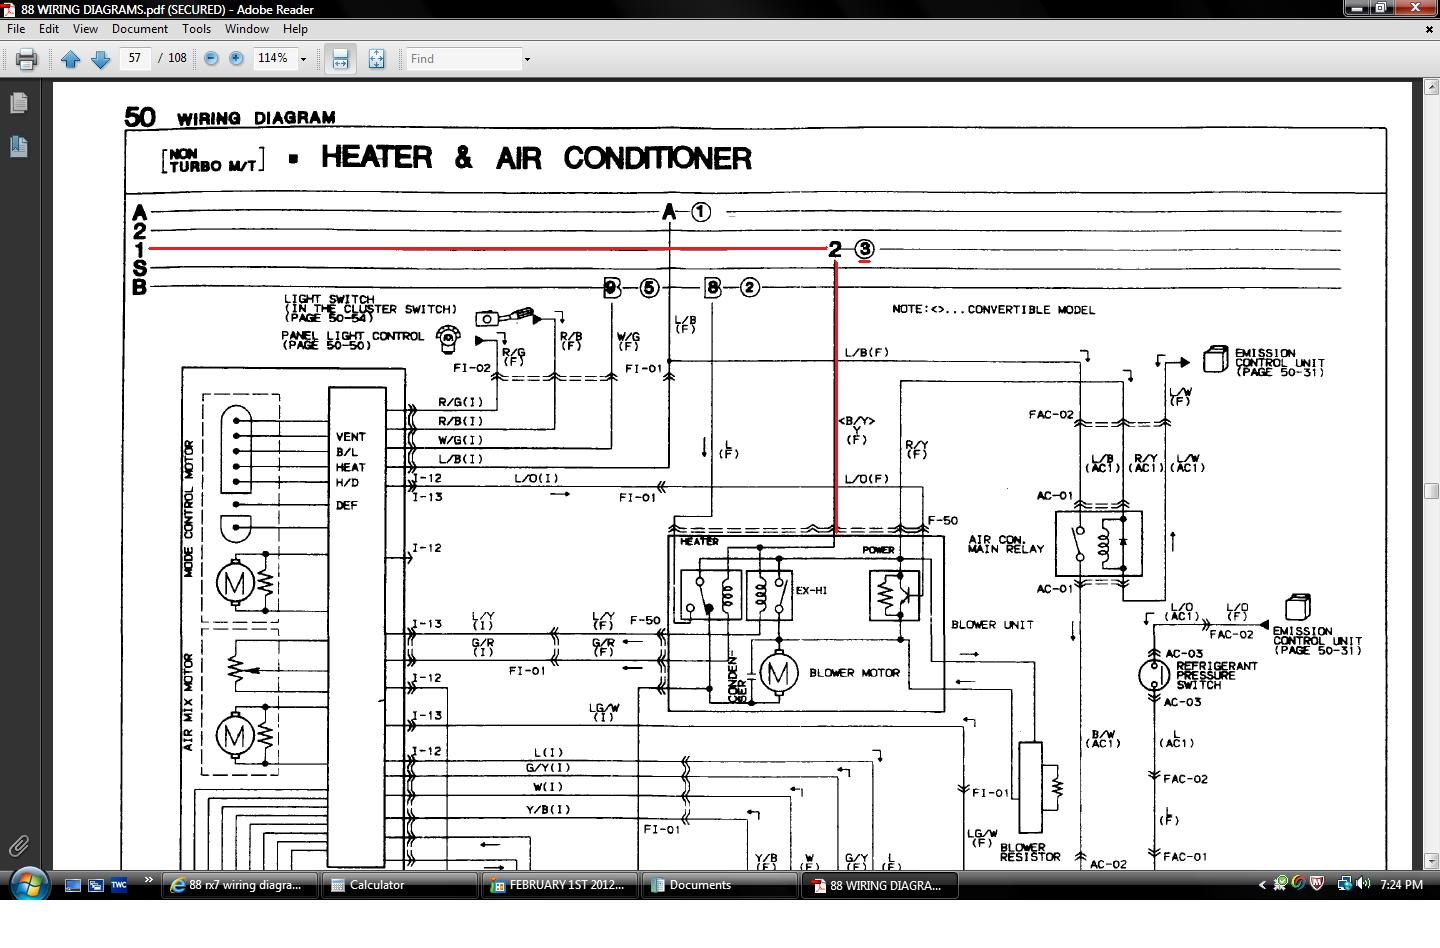 rx7 12a wiring diagram general wiring diagram information u2022 rh velvetfive co uk